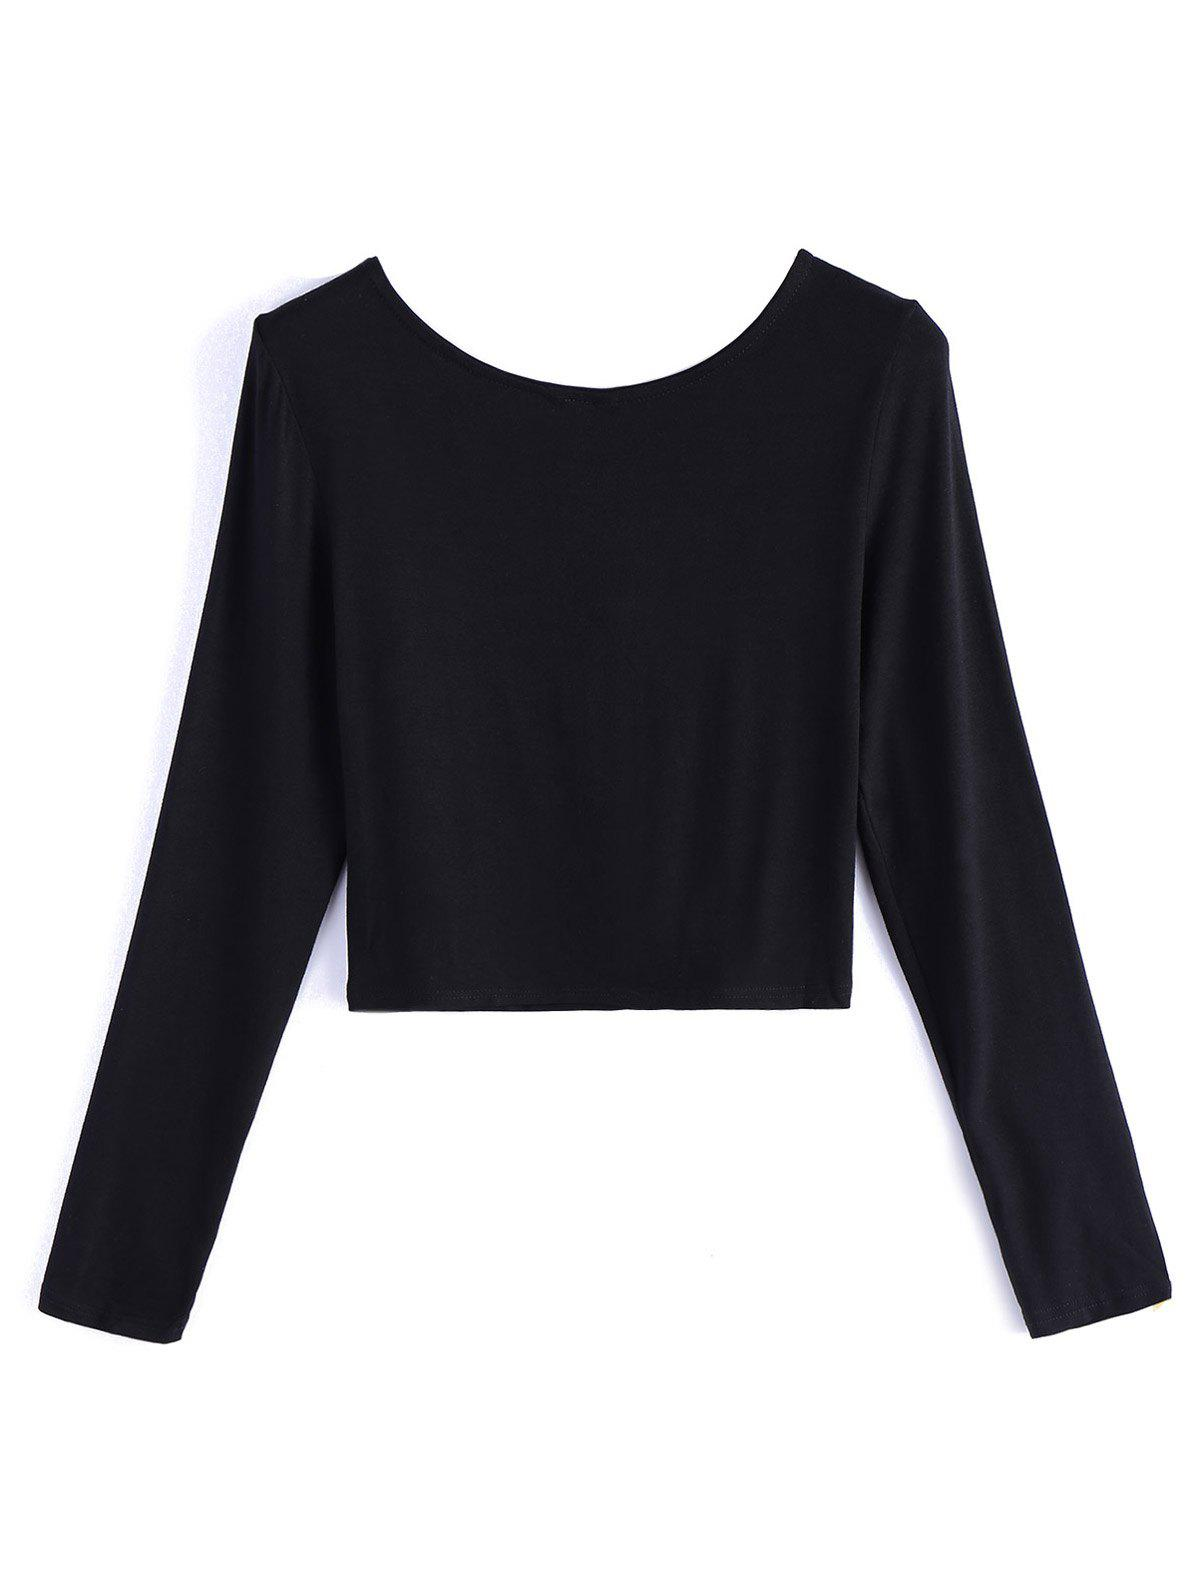 Lace Up Fitted Crop Tee Shirt - BLACK XL